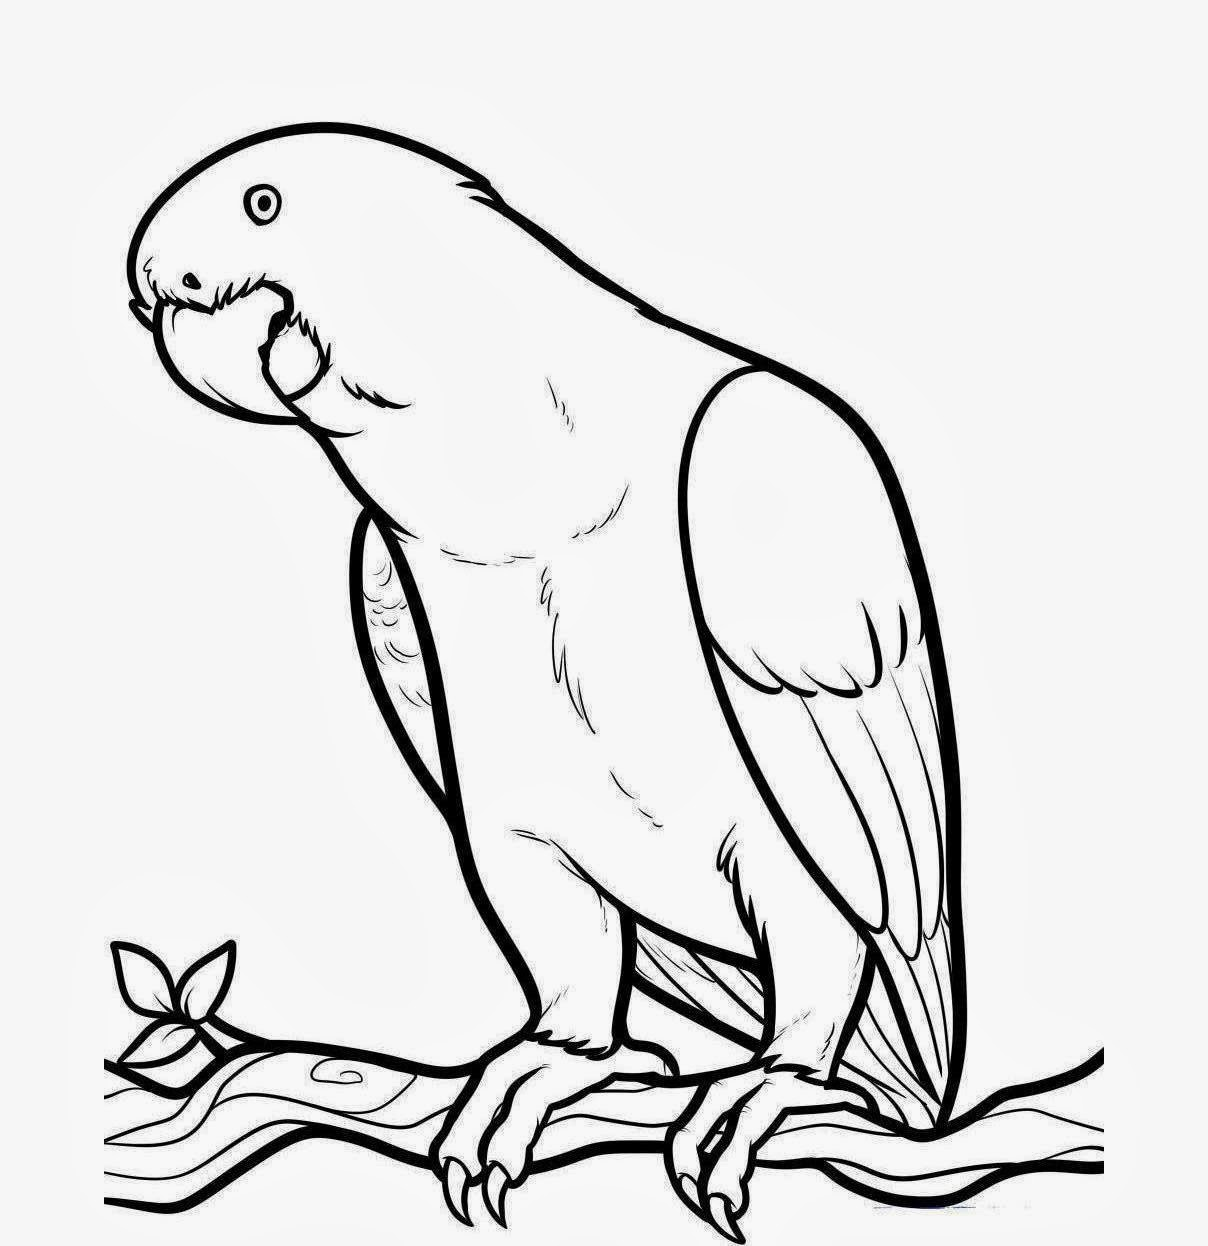 bird outlines bird outline drawing at getdrawings free download bird outlines